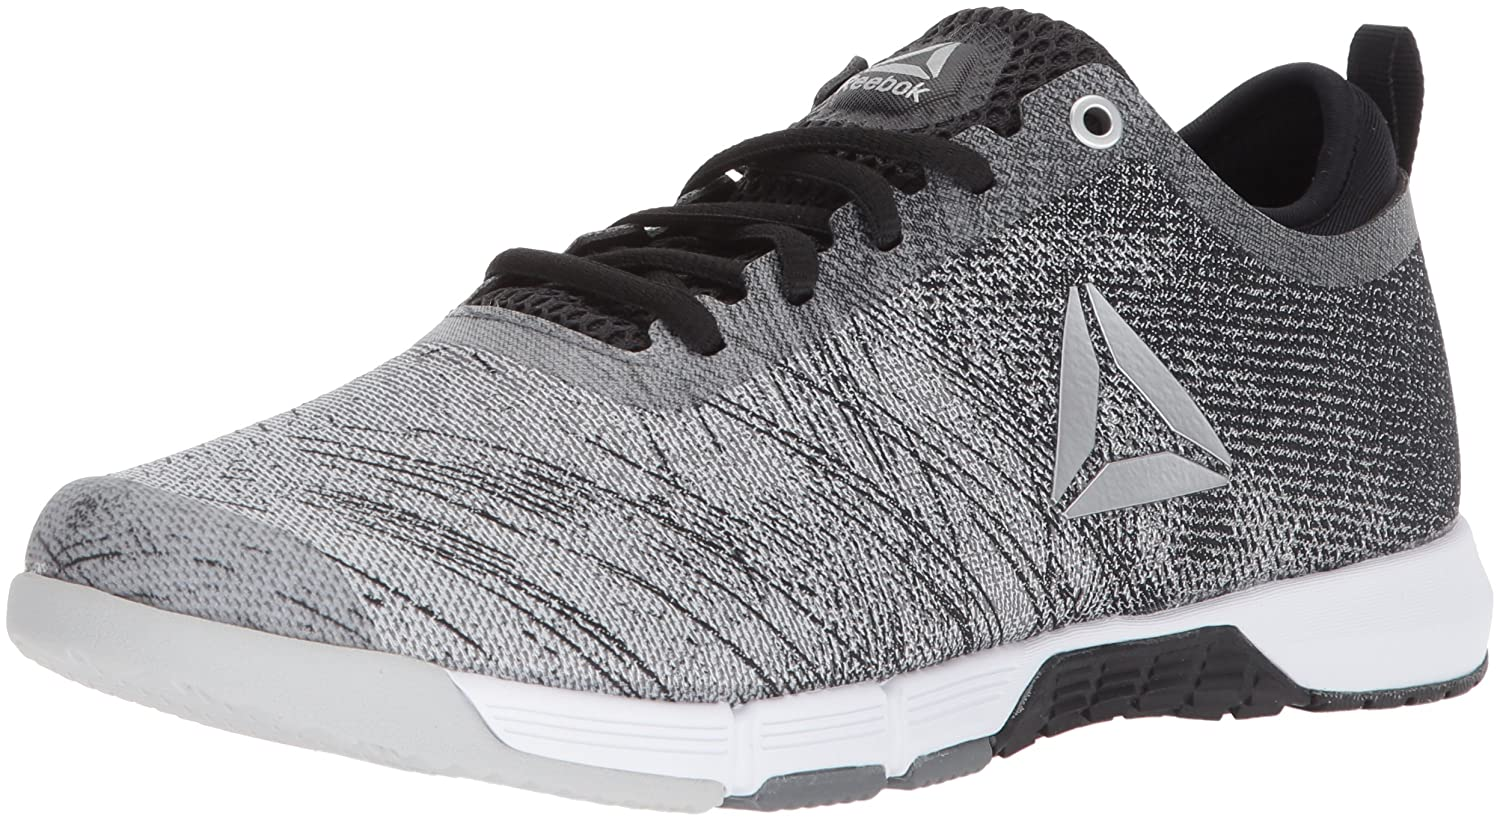 Reebok Women's Speed Her TR Sneaker B073RK81C9 9.5 B(M) US|Alloy/Black/White/Skull Grey/Silver